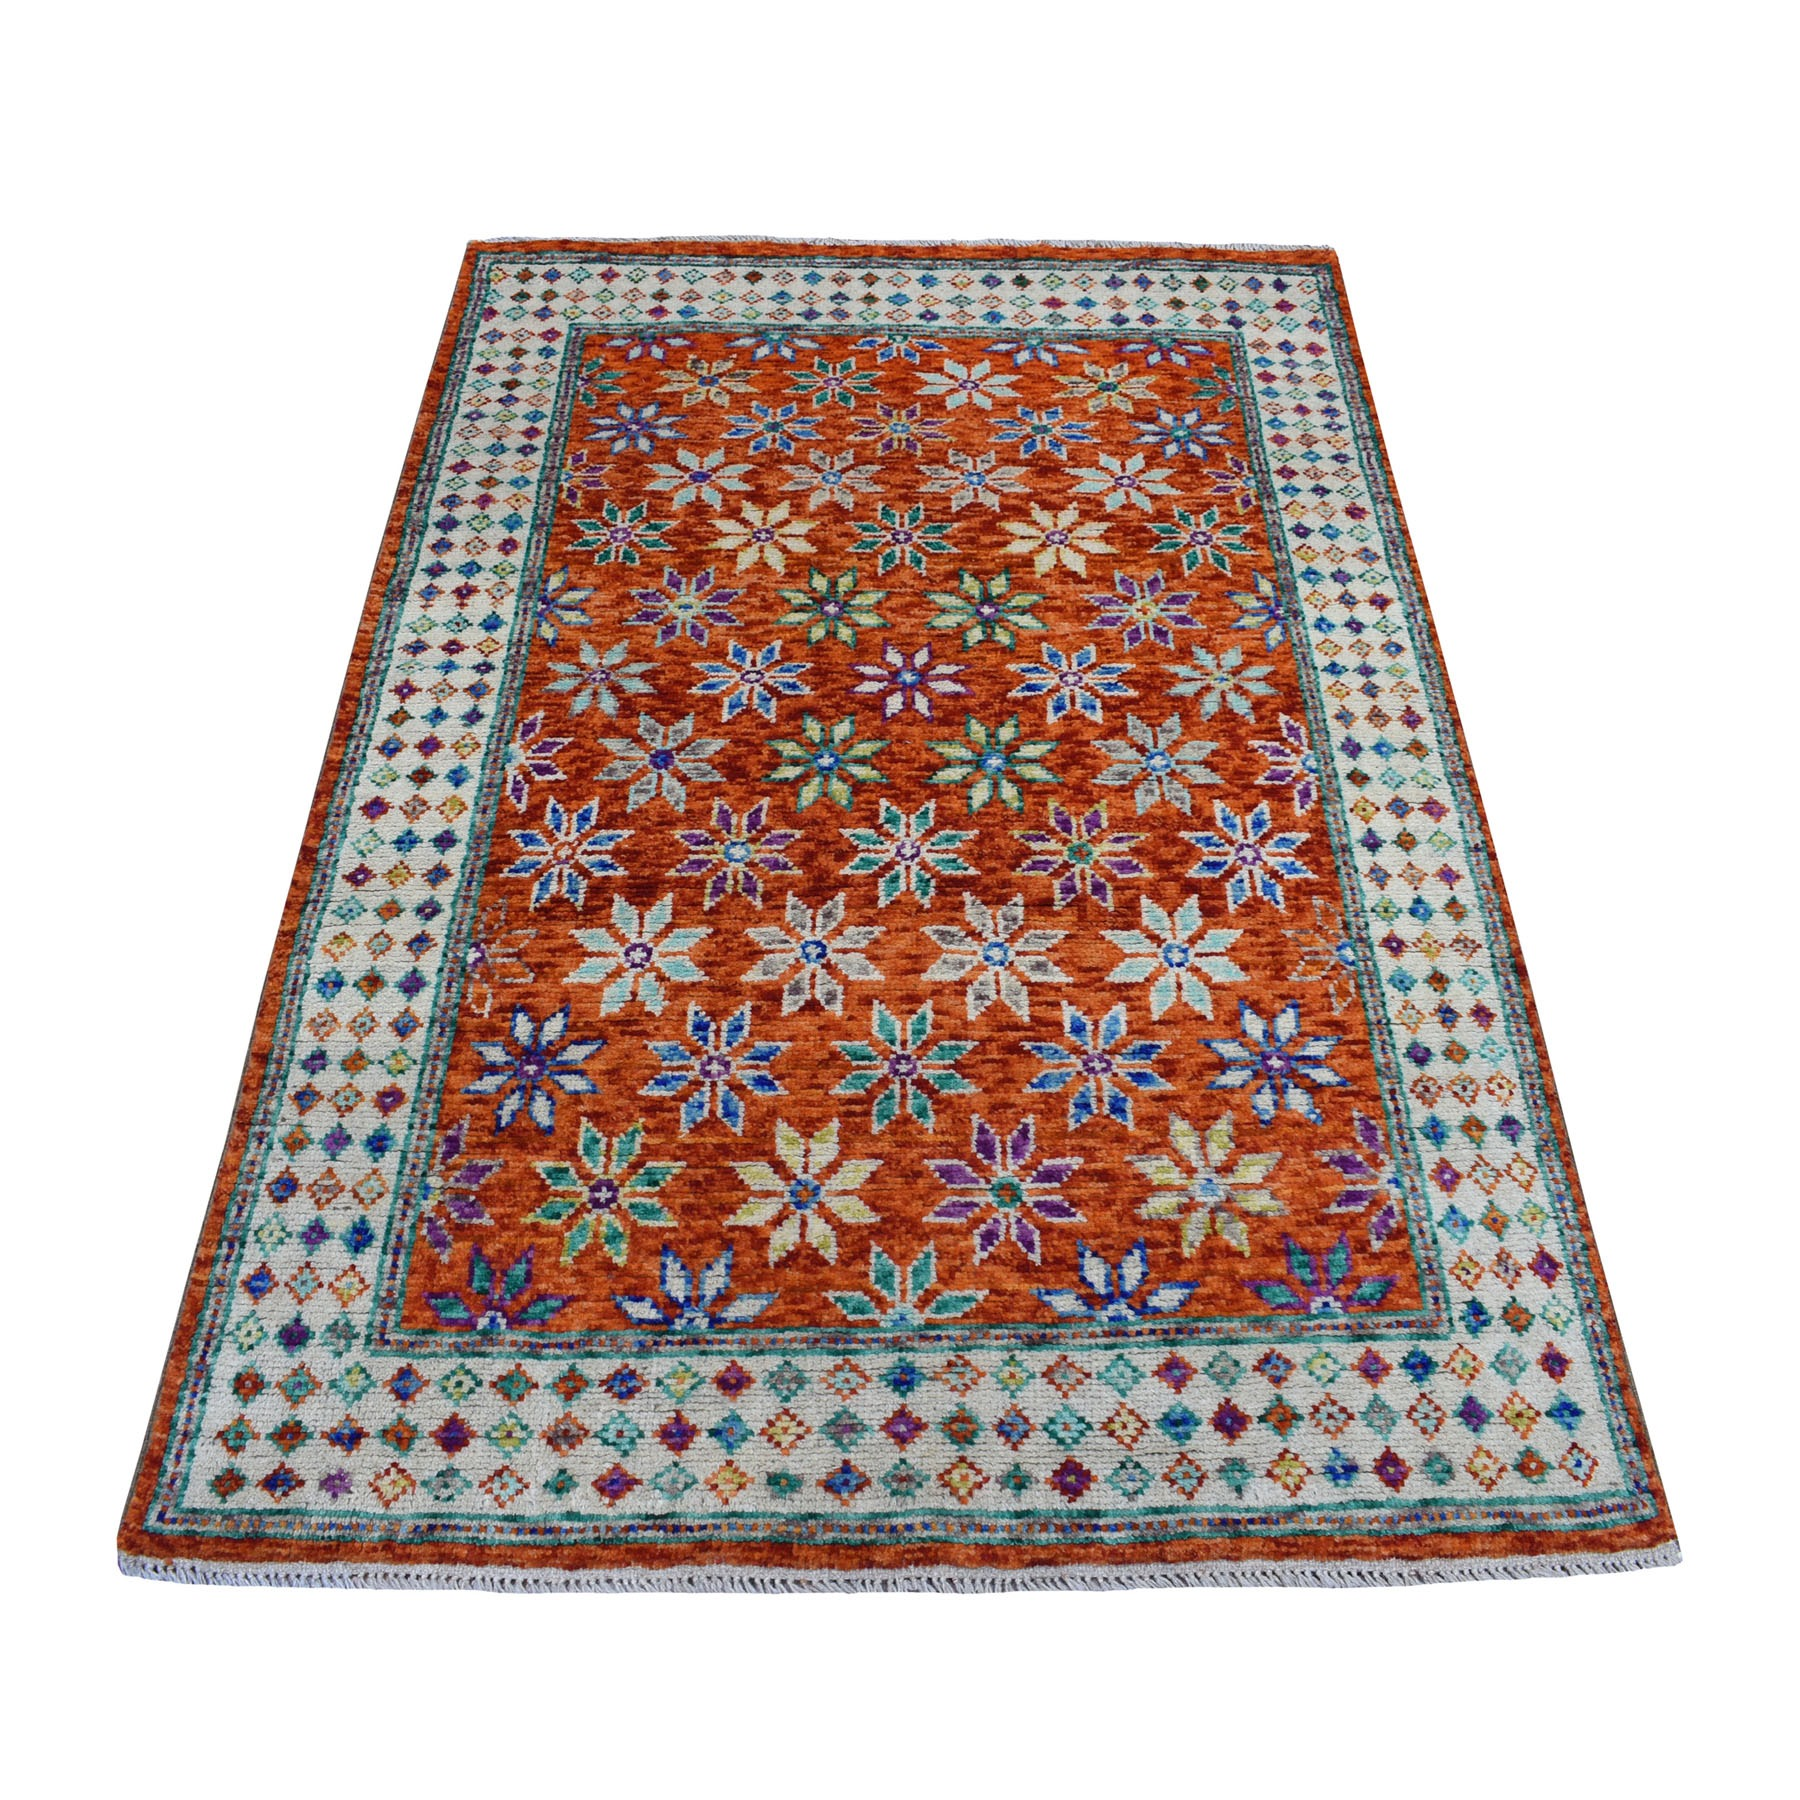 "4'x5'9"" Orange Hand Knotted Colorful Afghan Baluch All Over Design 100% Wool Oriental Rug"